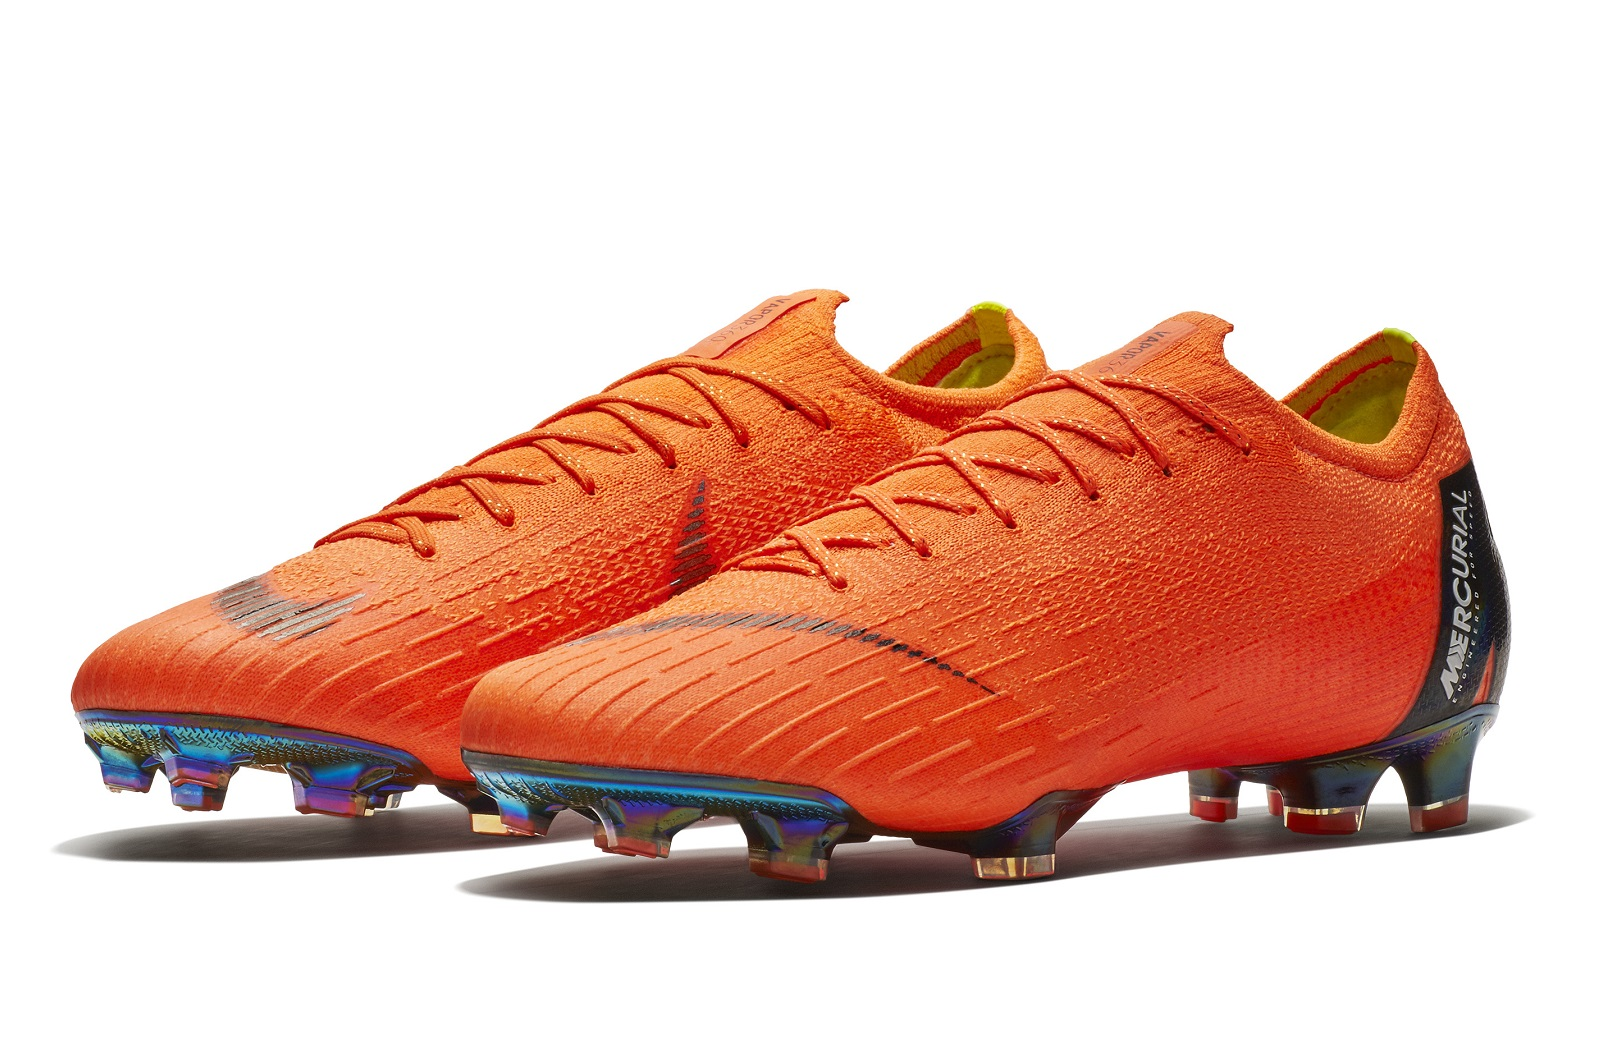 For Nike Mercurial Vapor fans. there is a new edition of the fabled speed  boot available that is sure to elevate your game. With 20 years of innovation  and ...